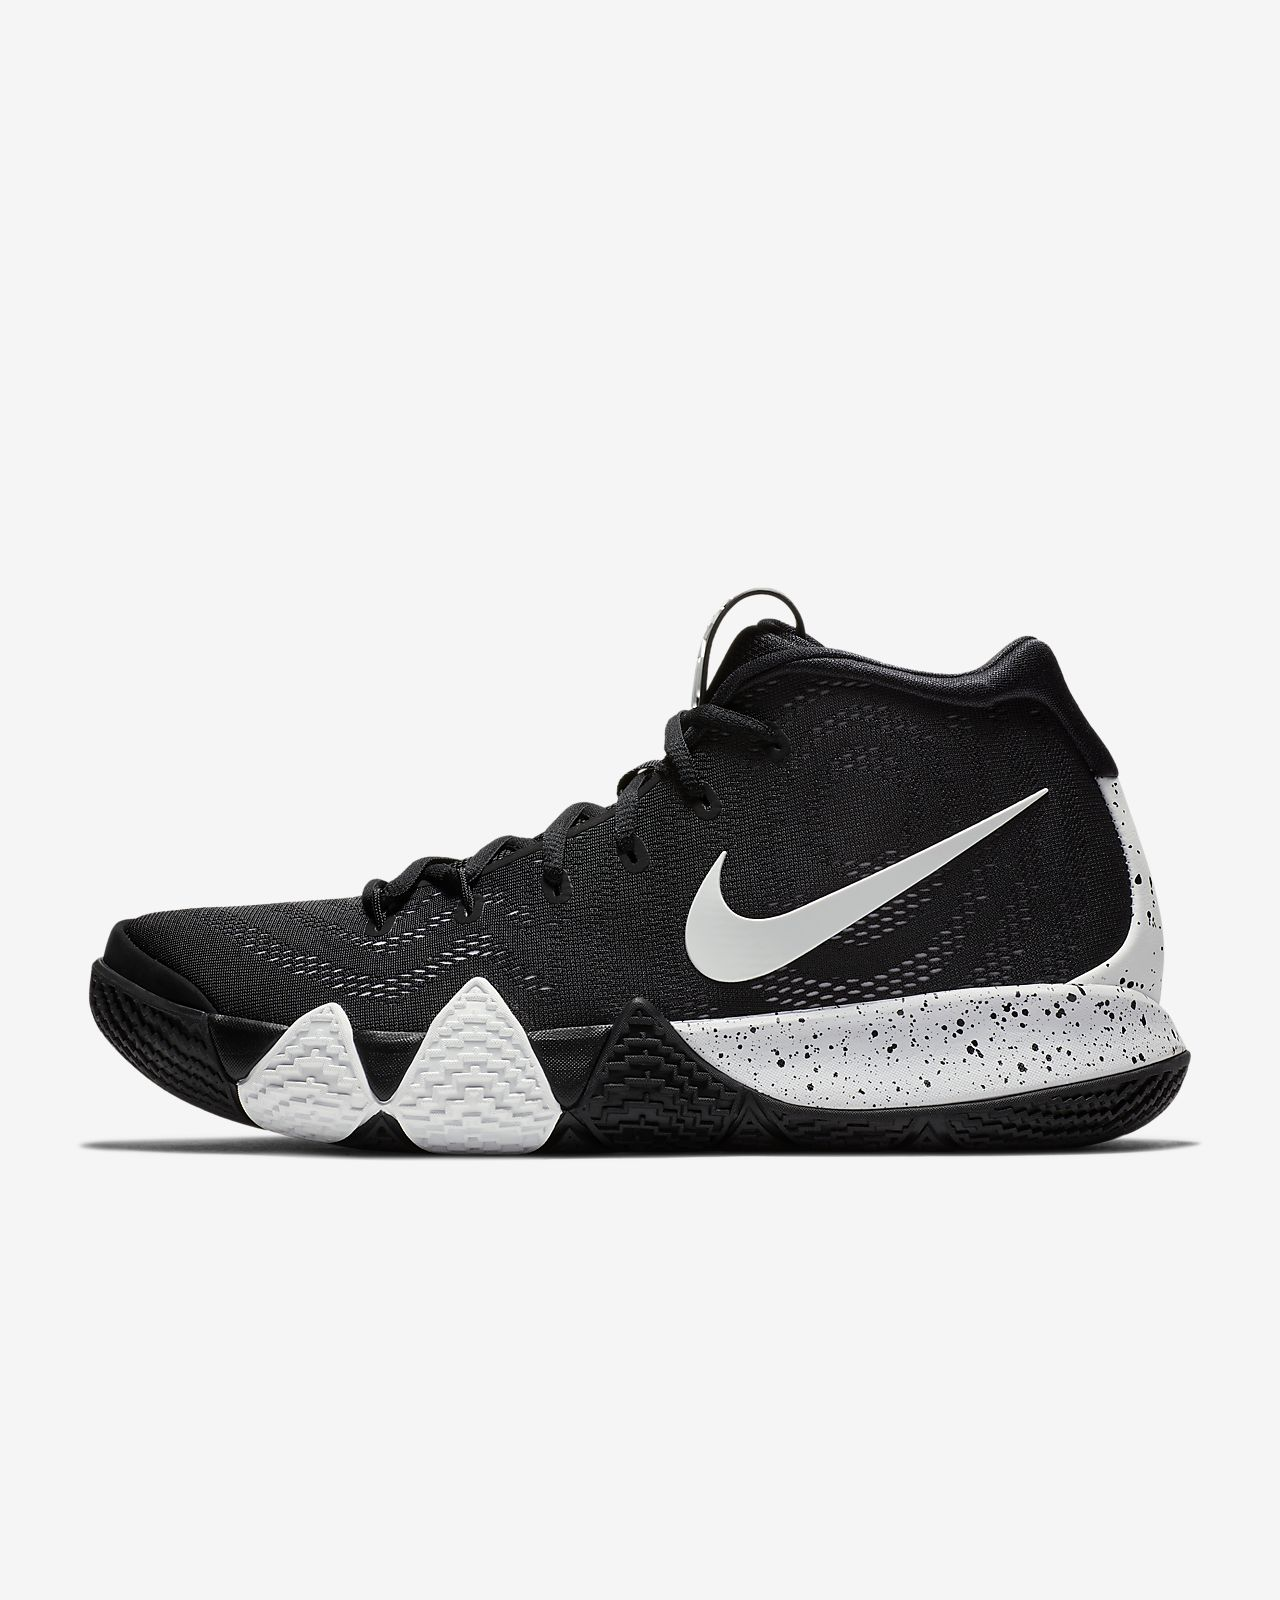 5fea487d4d1e Kyrie 4 (Team) Basketball Shoe. Nike.com ID